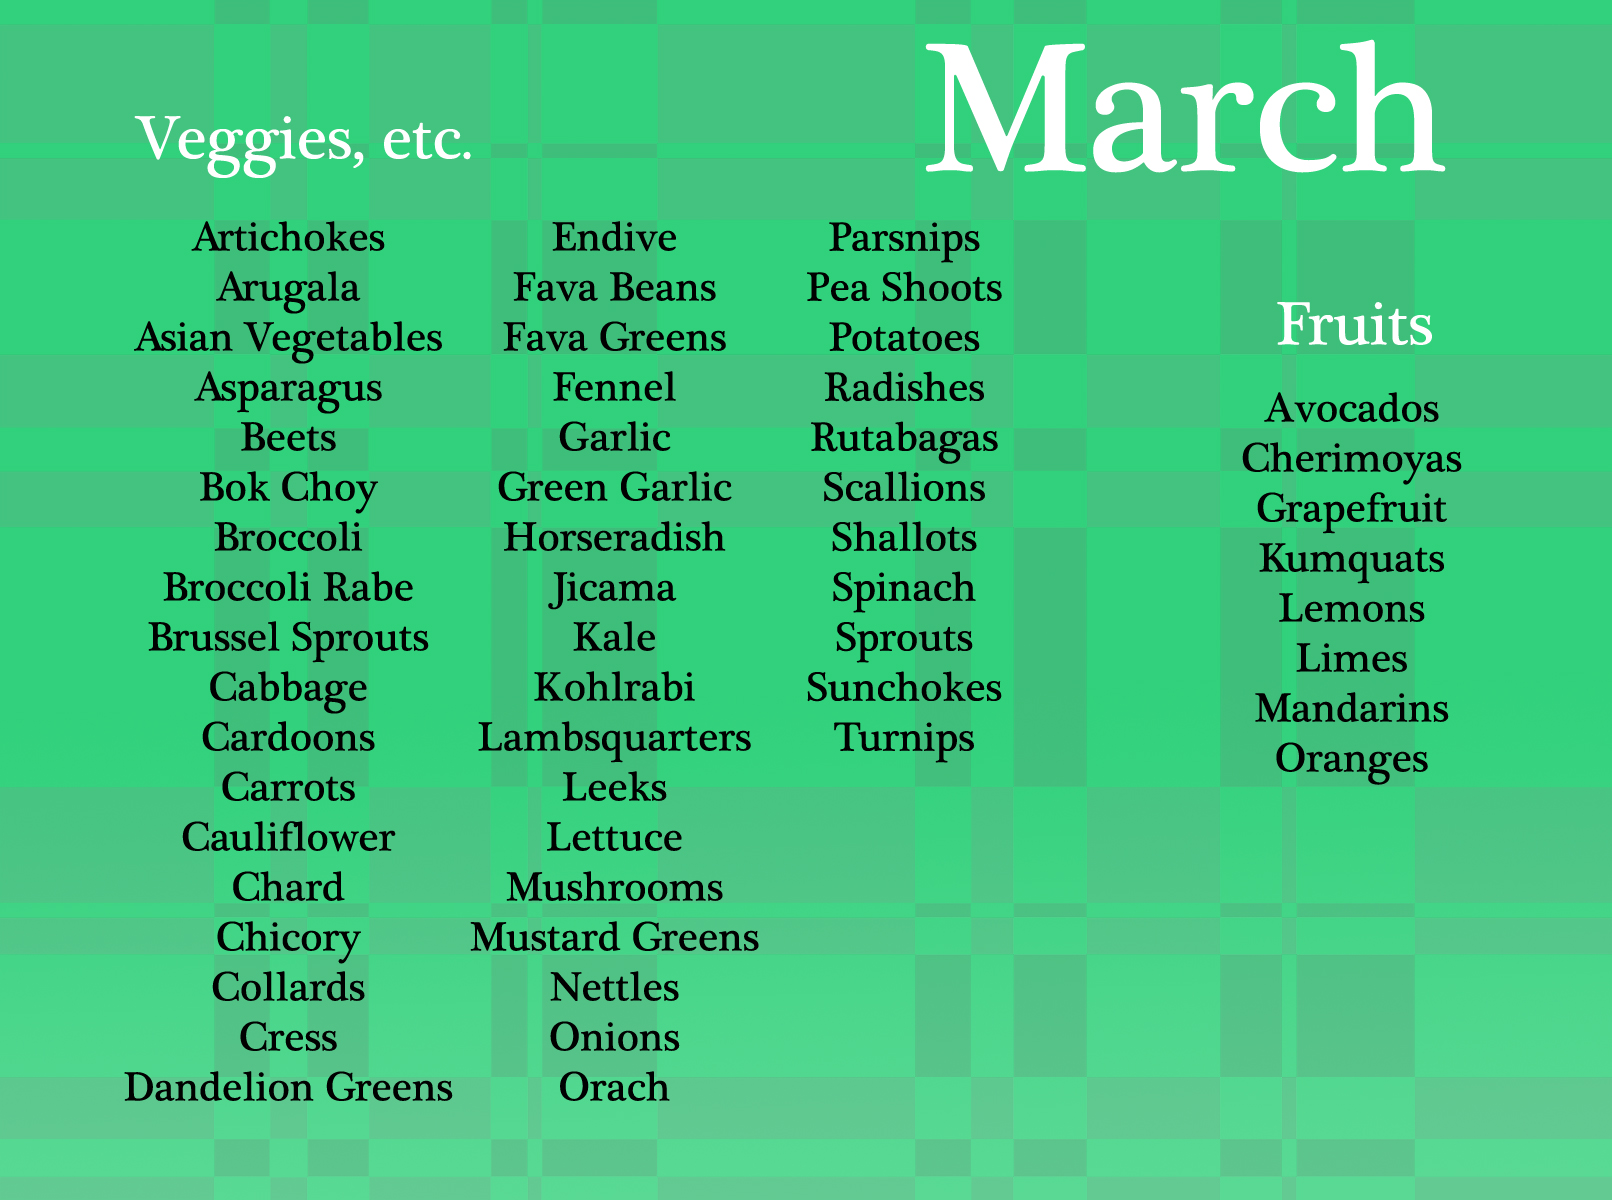 march-seasonal-fruits-and-veggies